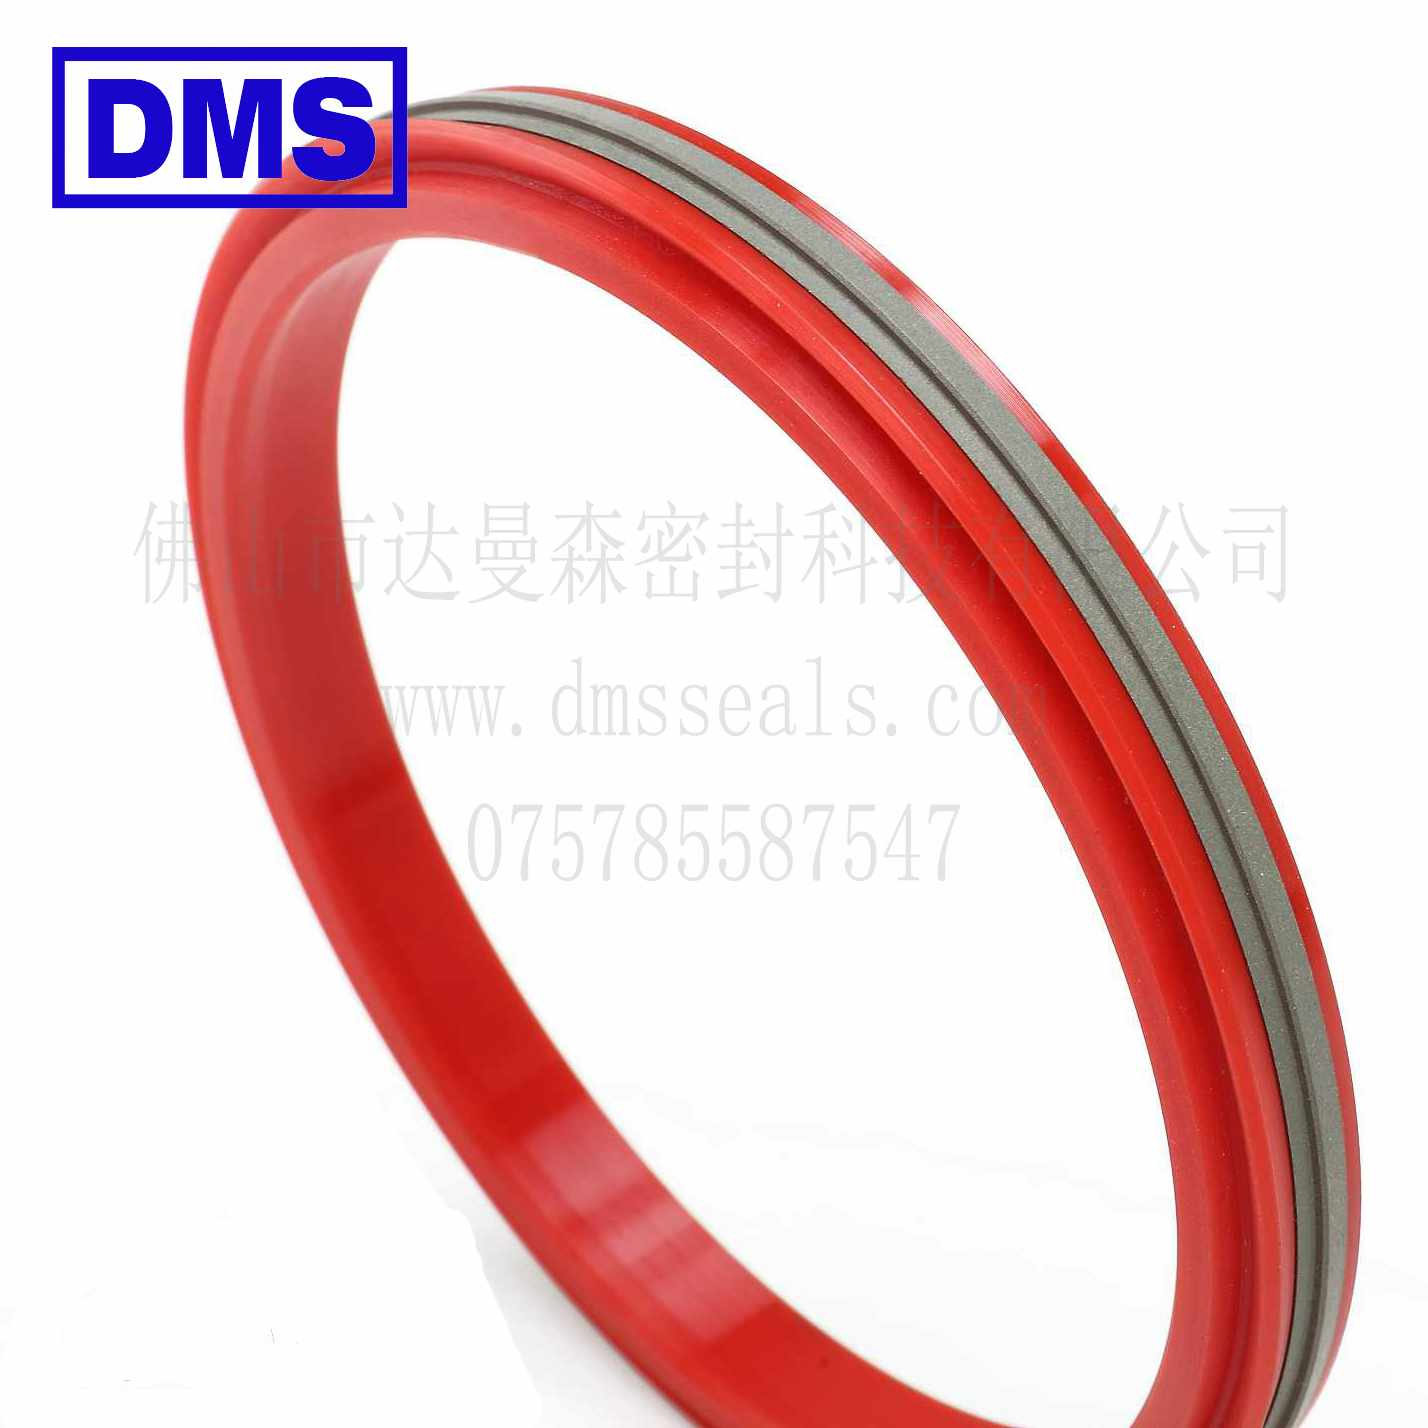 DDA - PTFE Hydraulic Piston Seal with NBR/FKM O-Ring